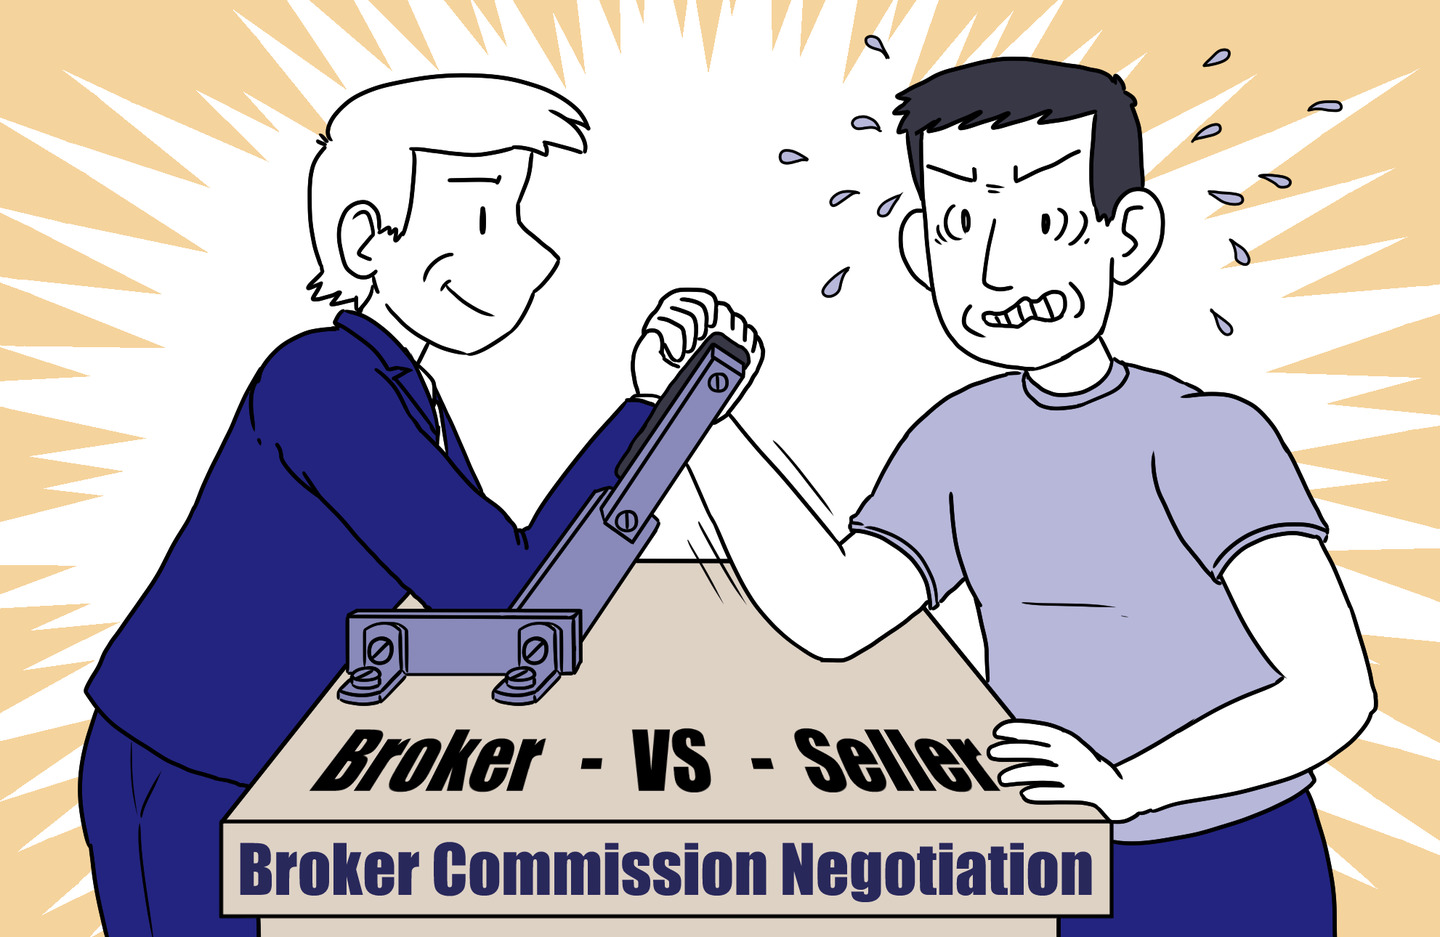 A seller and real estate broker are arm wrestling to negotiate the broker commission but the broker has a steel arm and can't lose